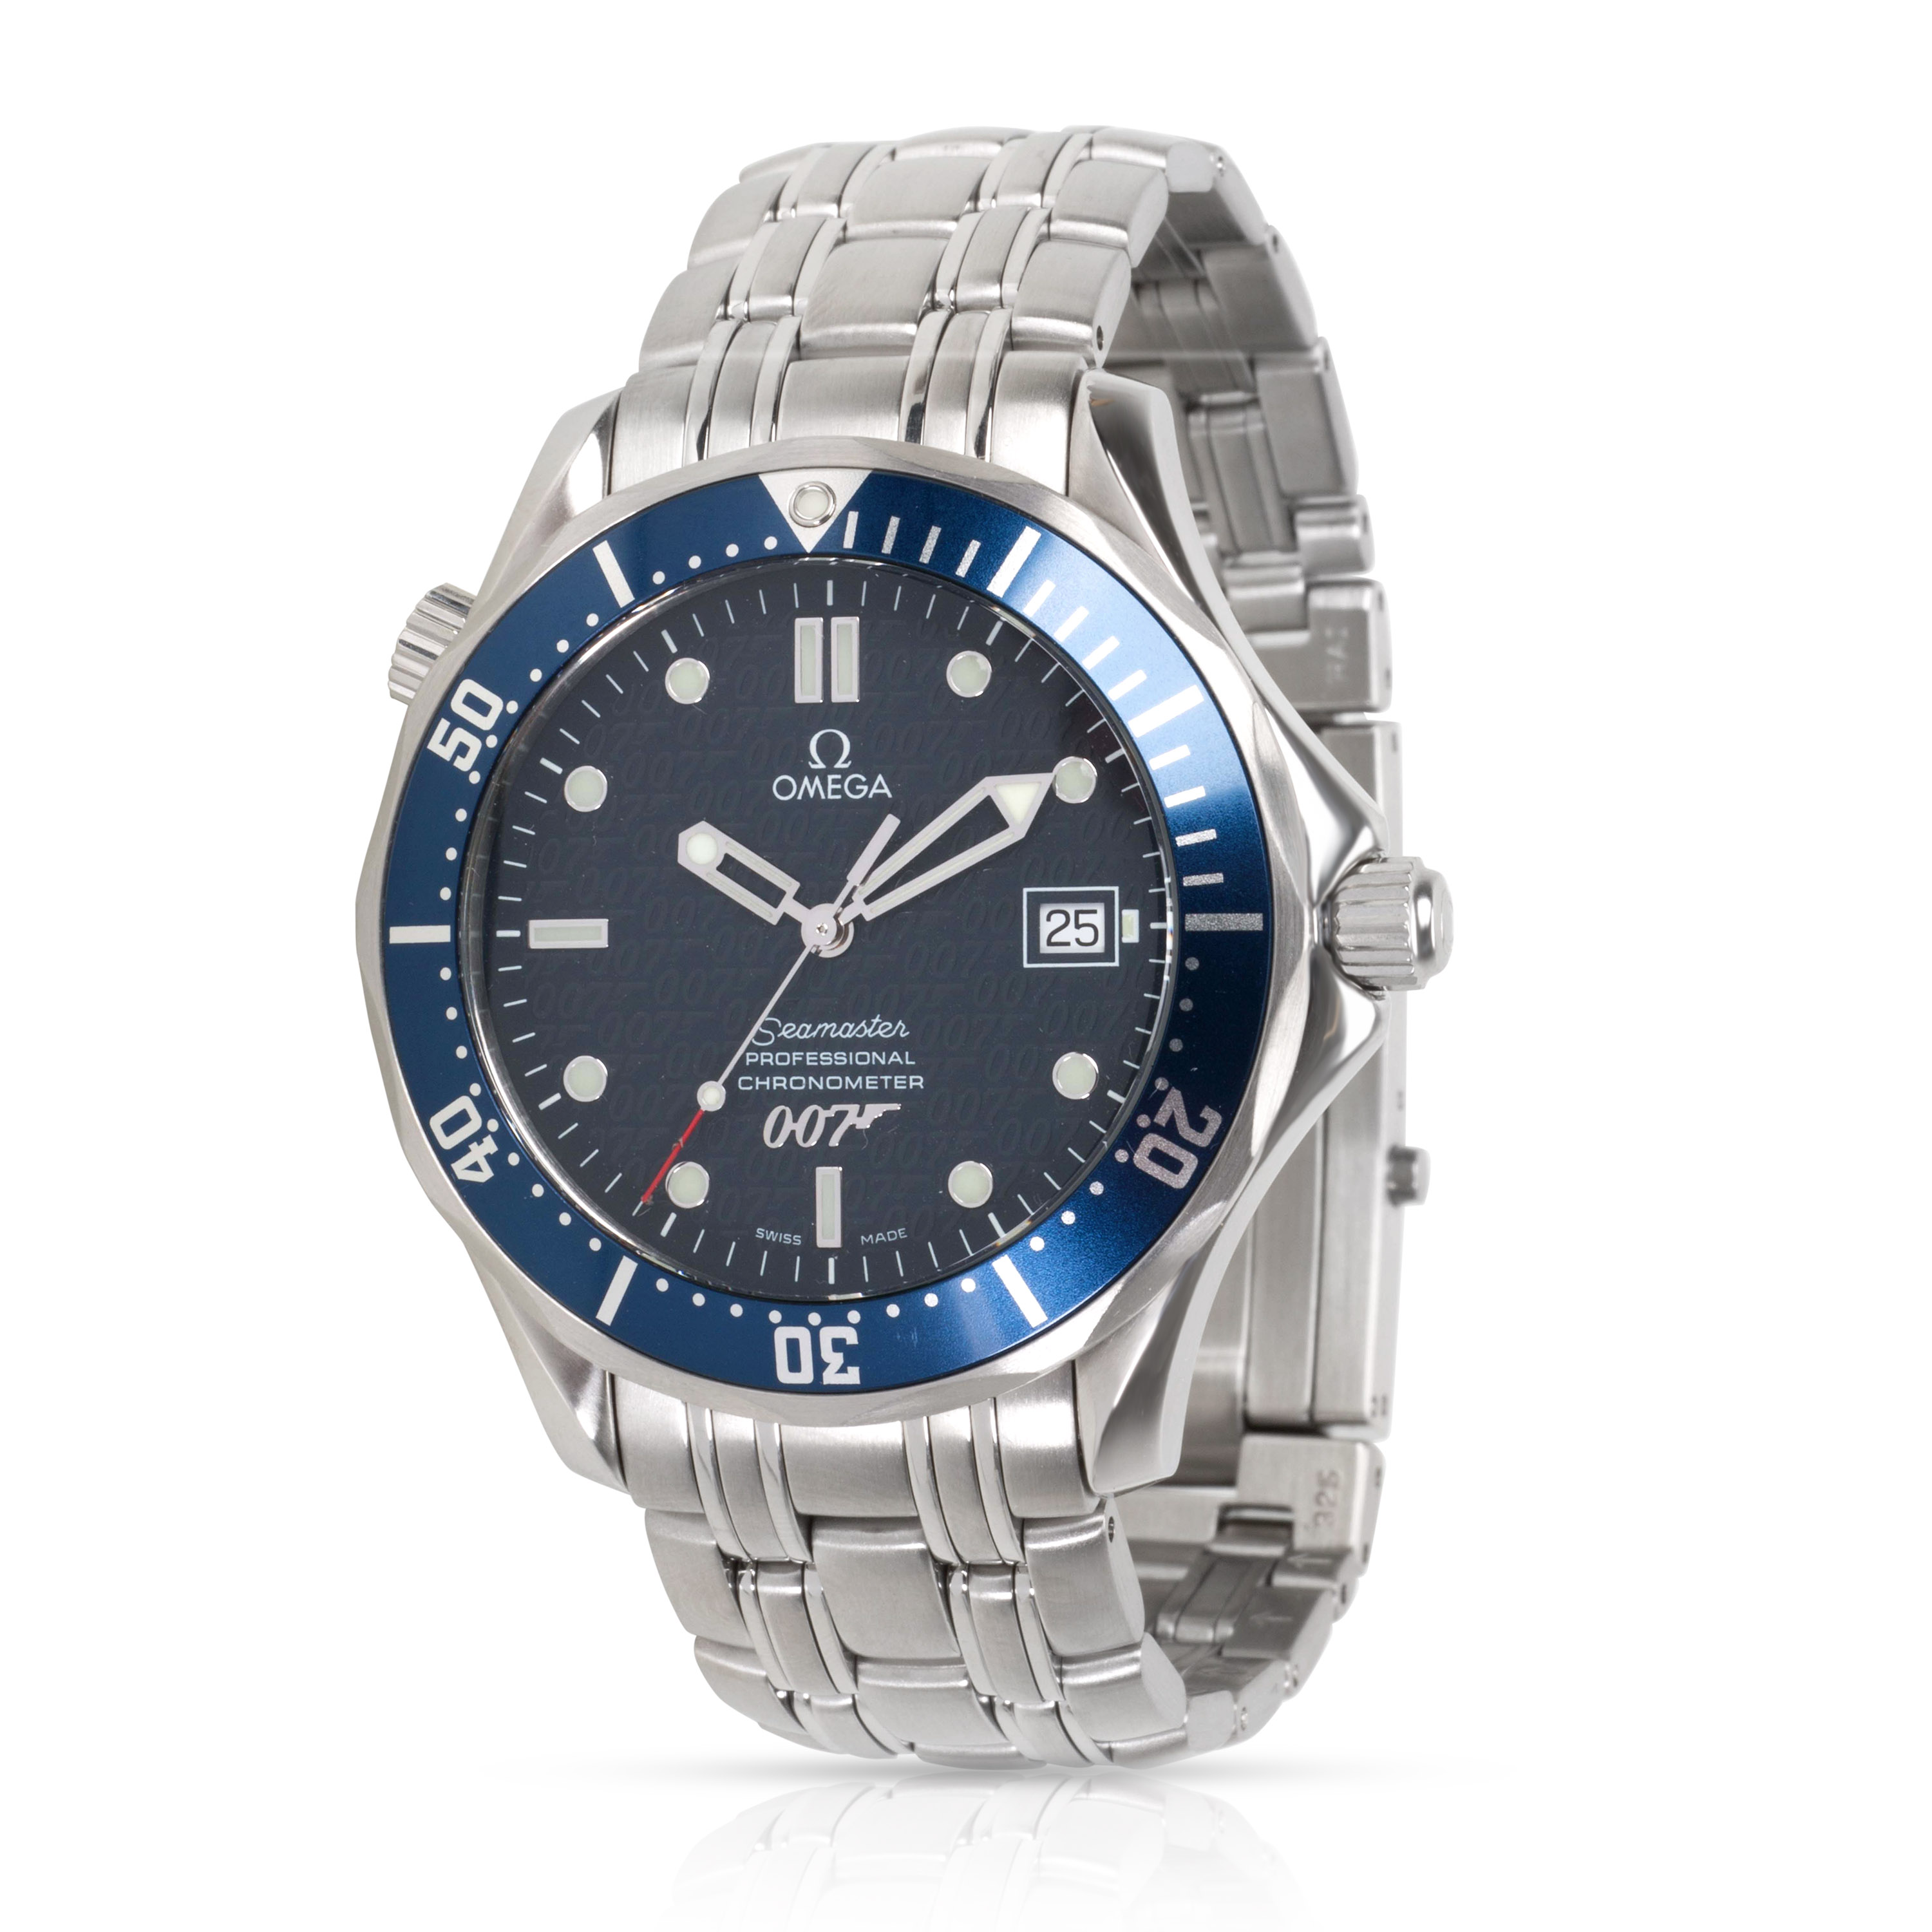 700d71a85b7 Omega Seamaster 300M James Bond 2537.80.00 Men s Watch in Stainless ...